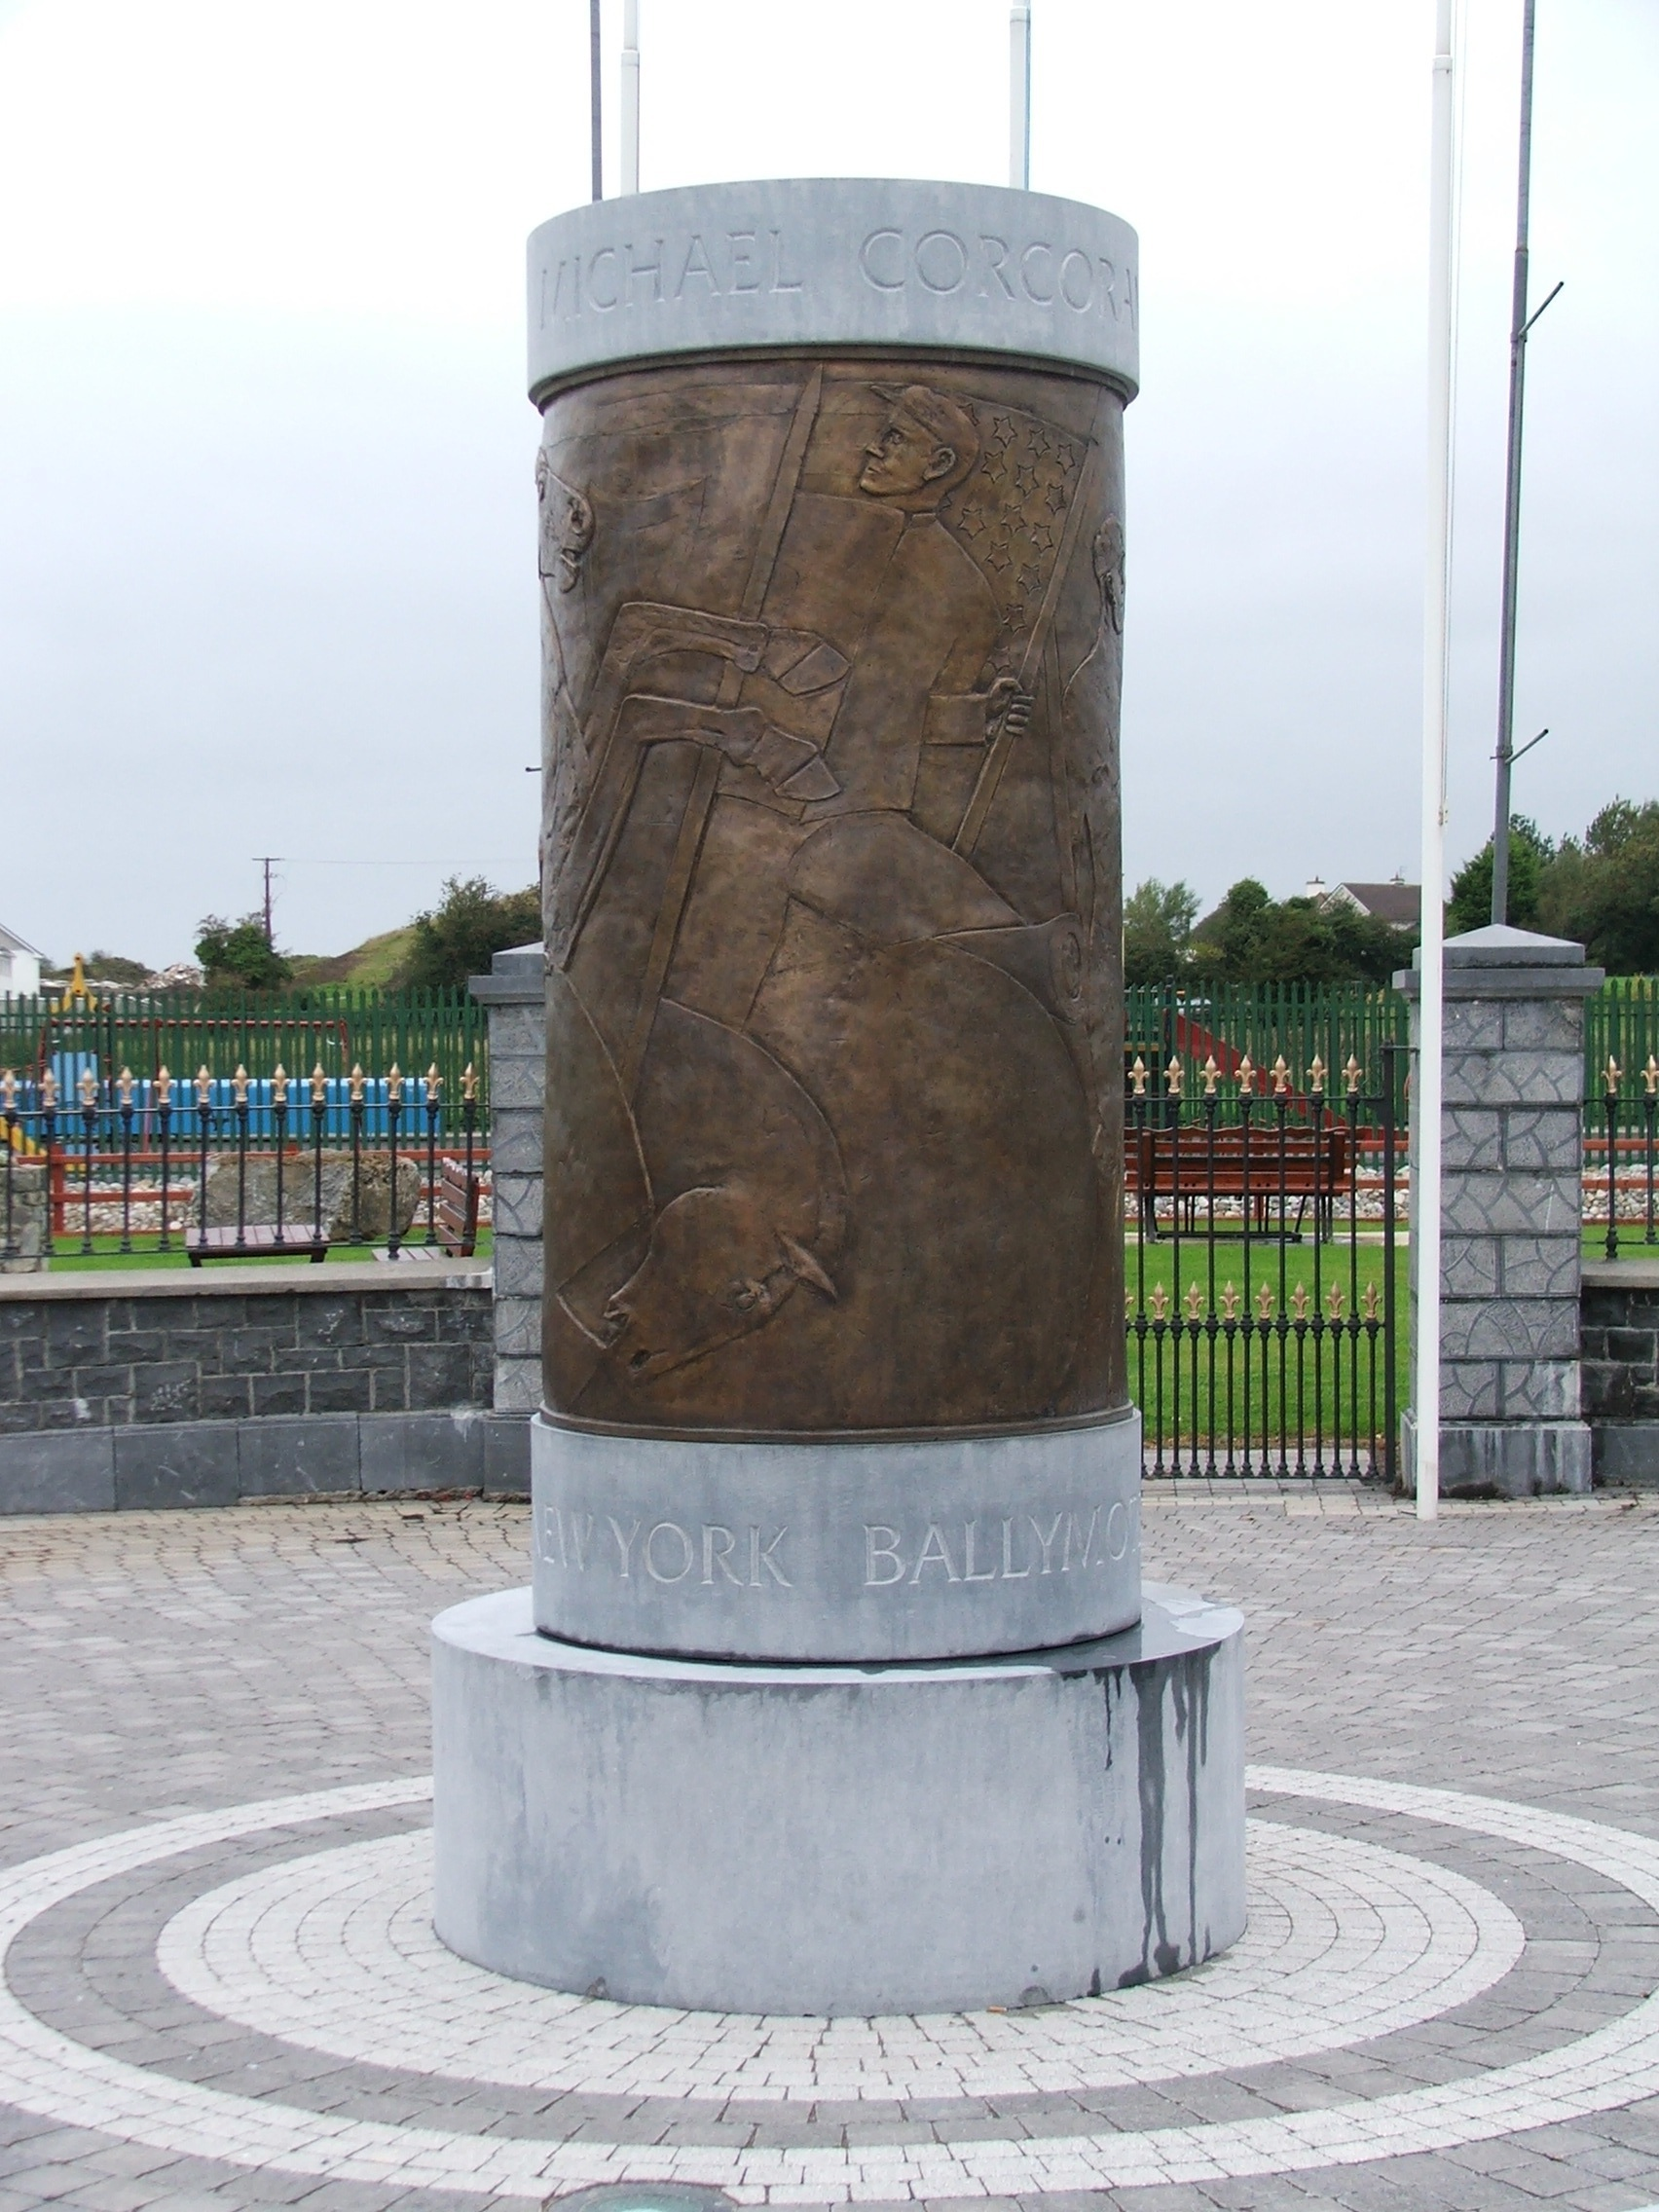 National Memorial to the Fighting 69th - Ballymote, County Sligo, Ireland